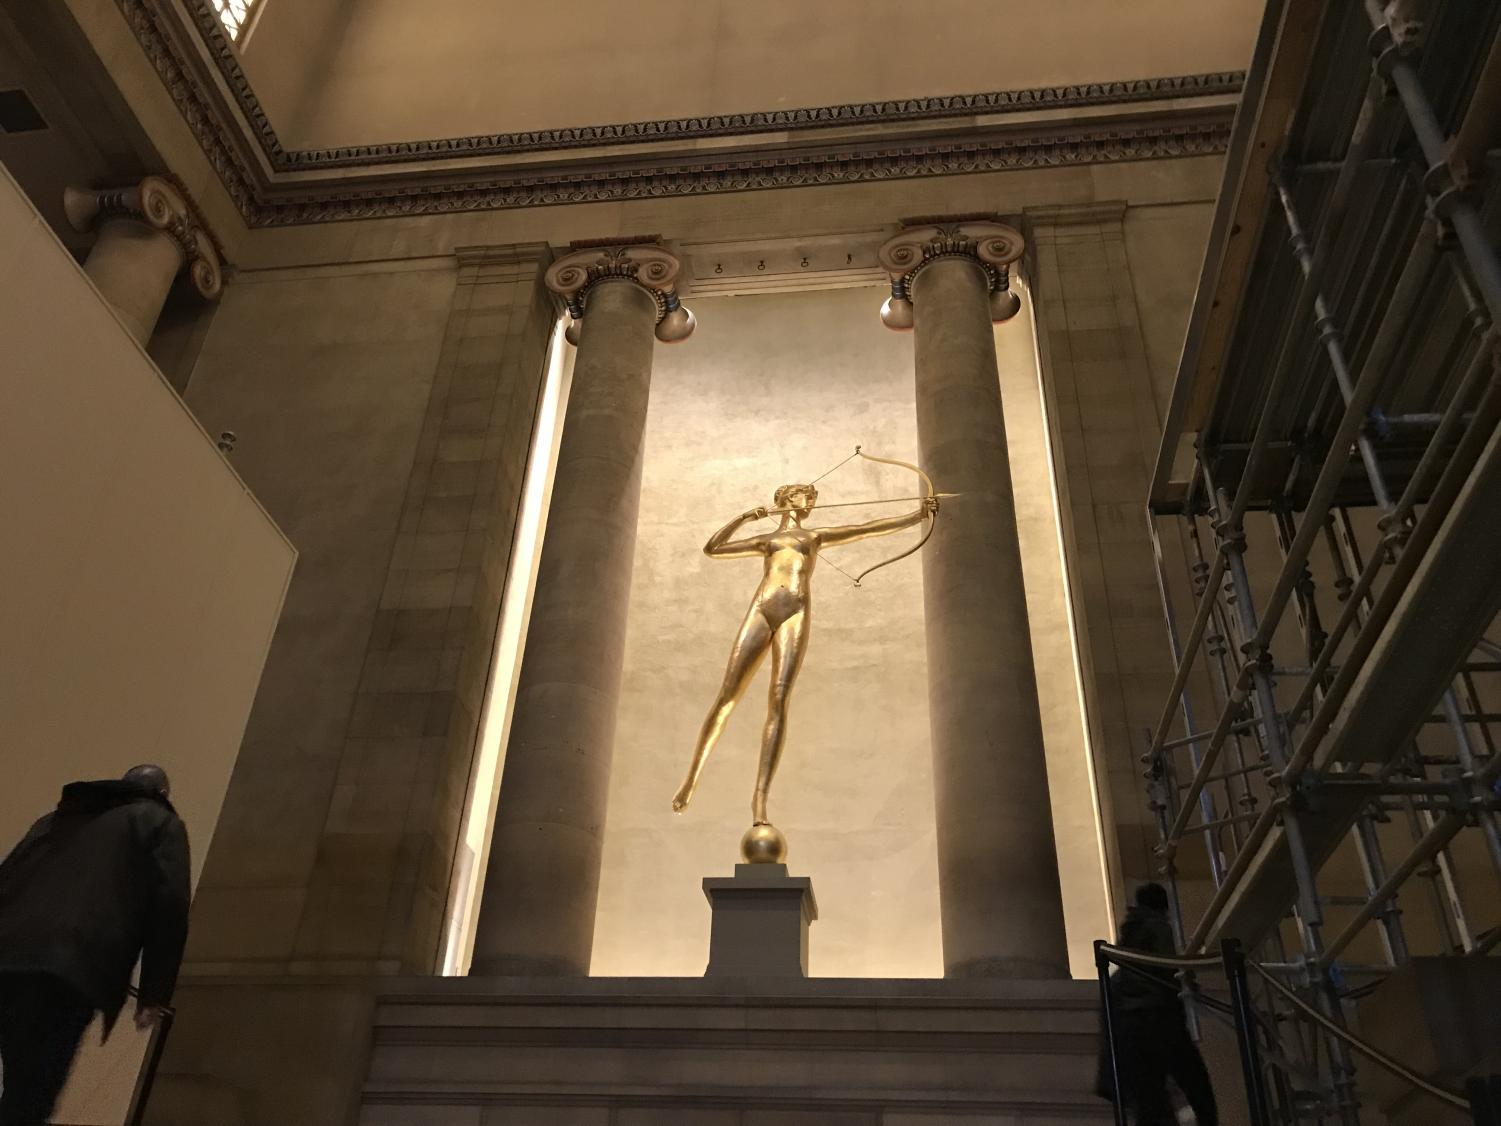 The copper structure, Diana, at the top of the museum's grand staircase.